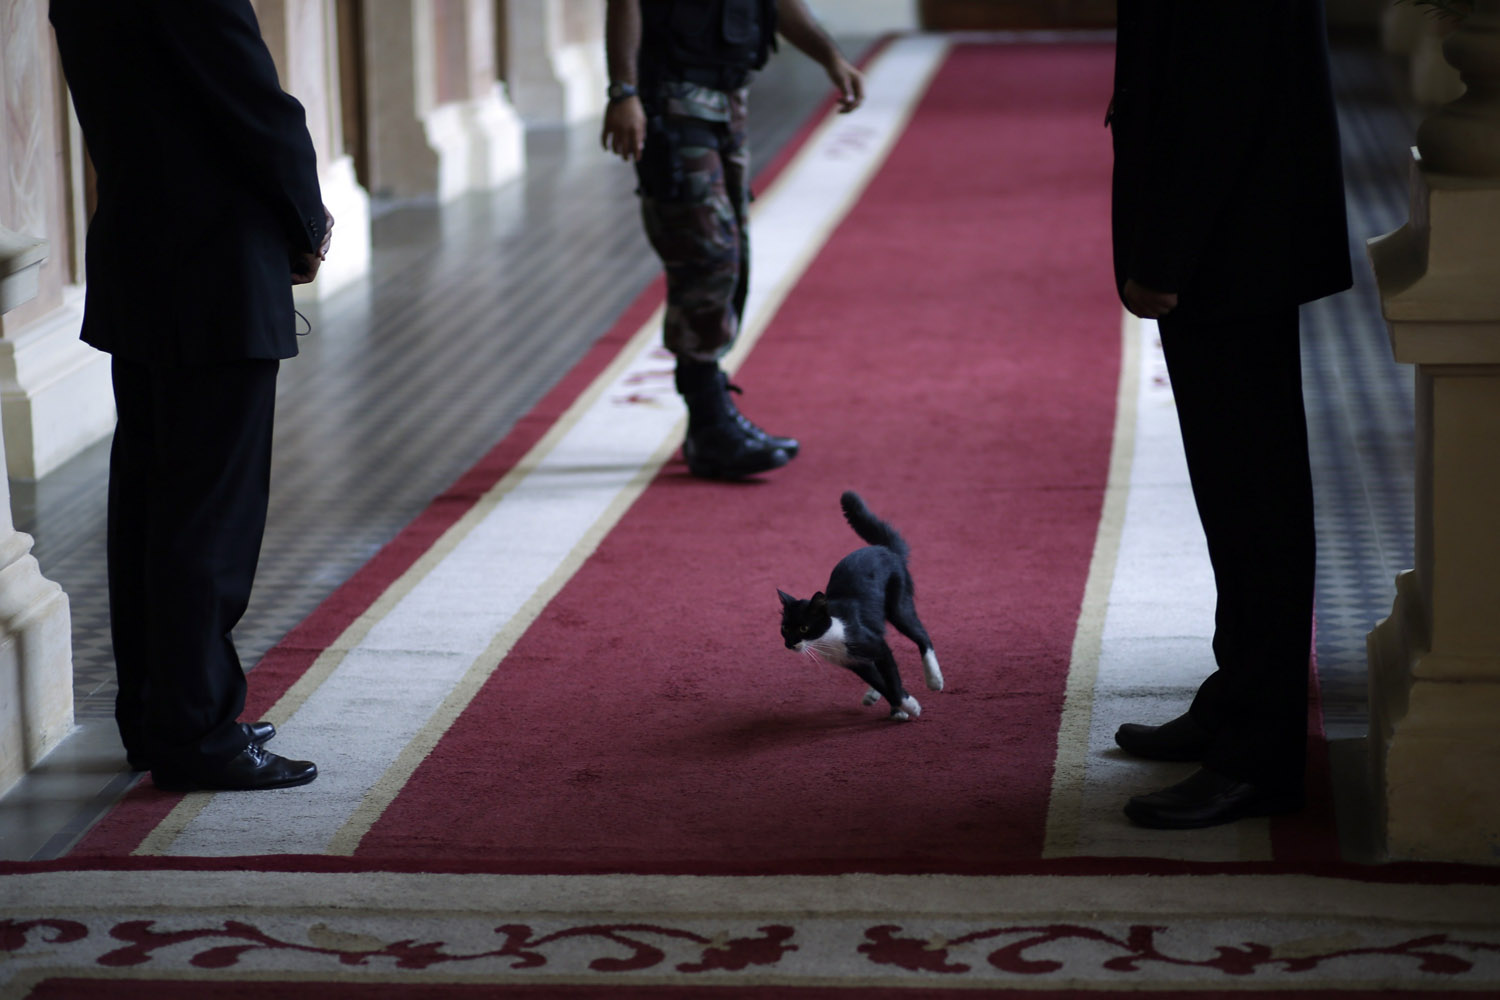 Mar. 20, 2014. Resident cat, El dueo de casa, tears through a Government Palace corridor as officials await the arrival of U.S. Assistant Secretary of State of the Bureau of Western Hemisphere Affairs Roberta S. Jacobson, for her official meeting with Paraguayan President Horacio Cartes, in Asuncion, Paraguay,